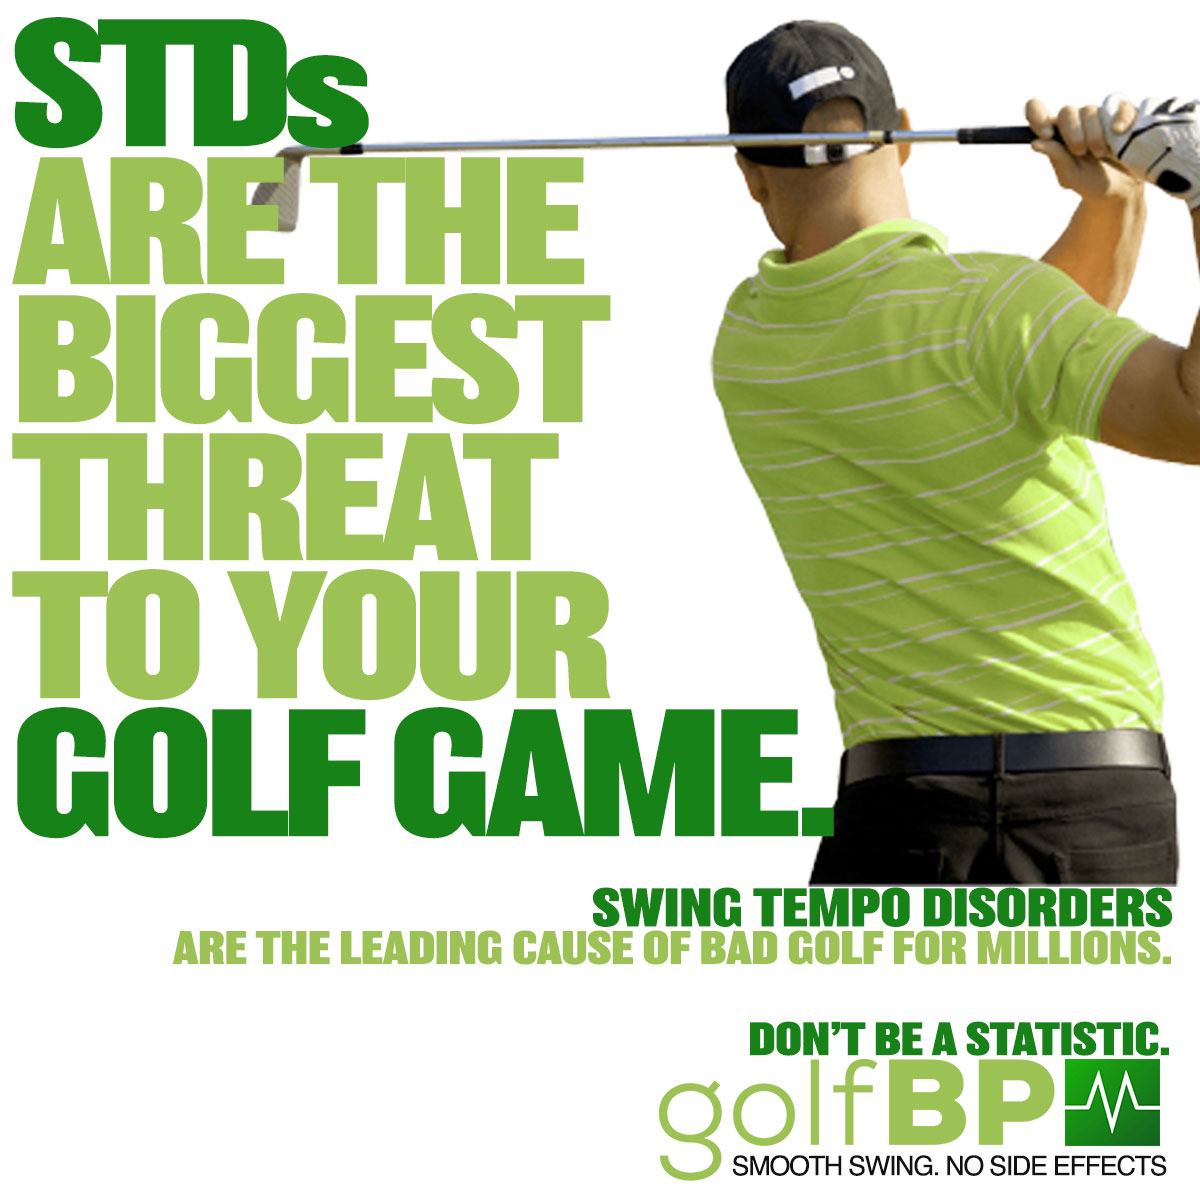 """Golf meets pharma. - This campaign fits with the fun, humorous, branding of GolfBPM. It uses health statistics, mock pharma ads, a fictitious disorder called """"Swing Tempo Disorder"""", and catchy headlines to grab attention, then grab readers interest. A YouTube video campaign to come…"""